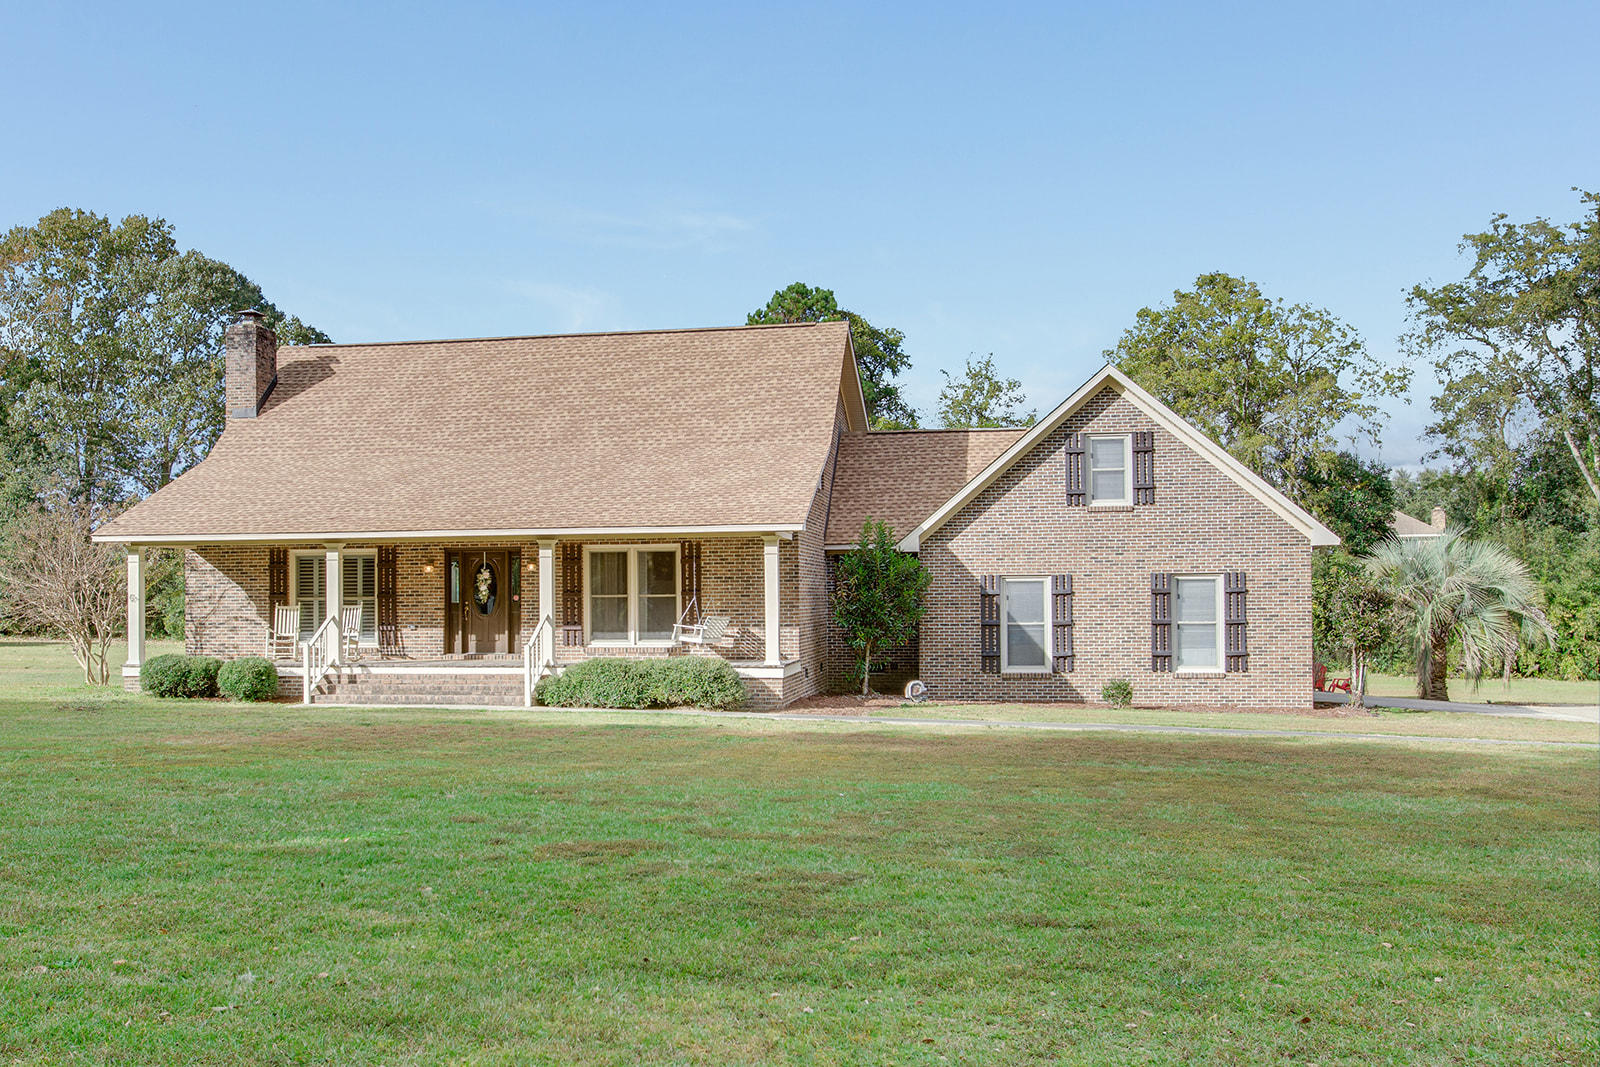 328 Avenue of Oaks Moncks Corner, SC 29461